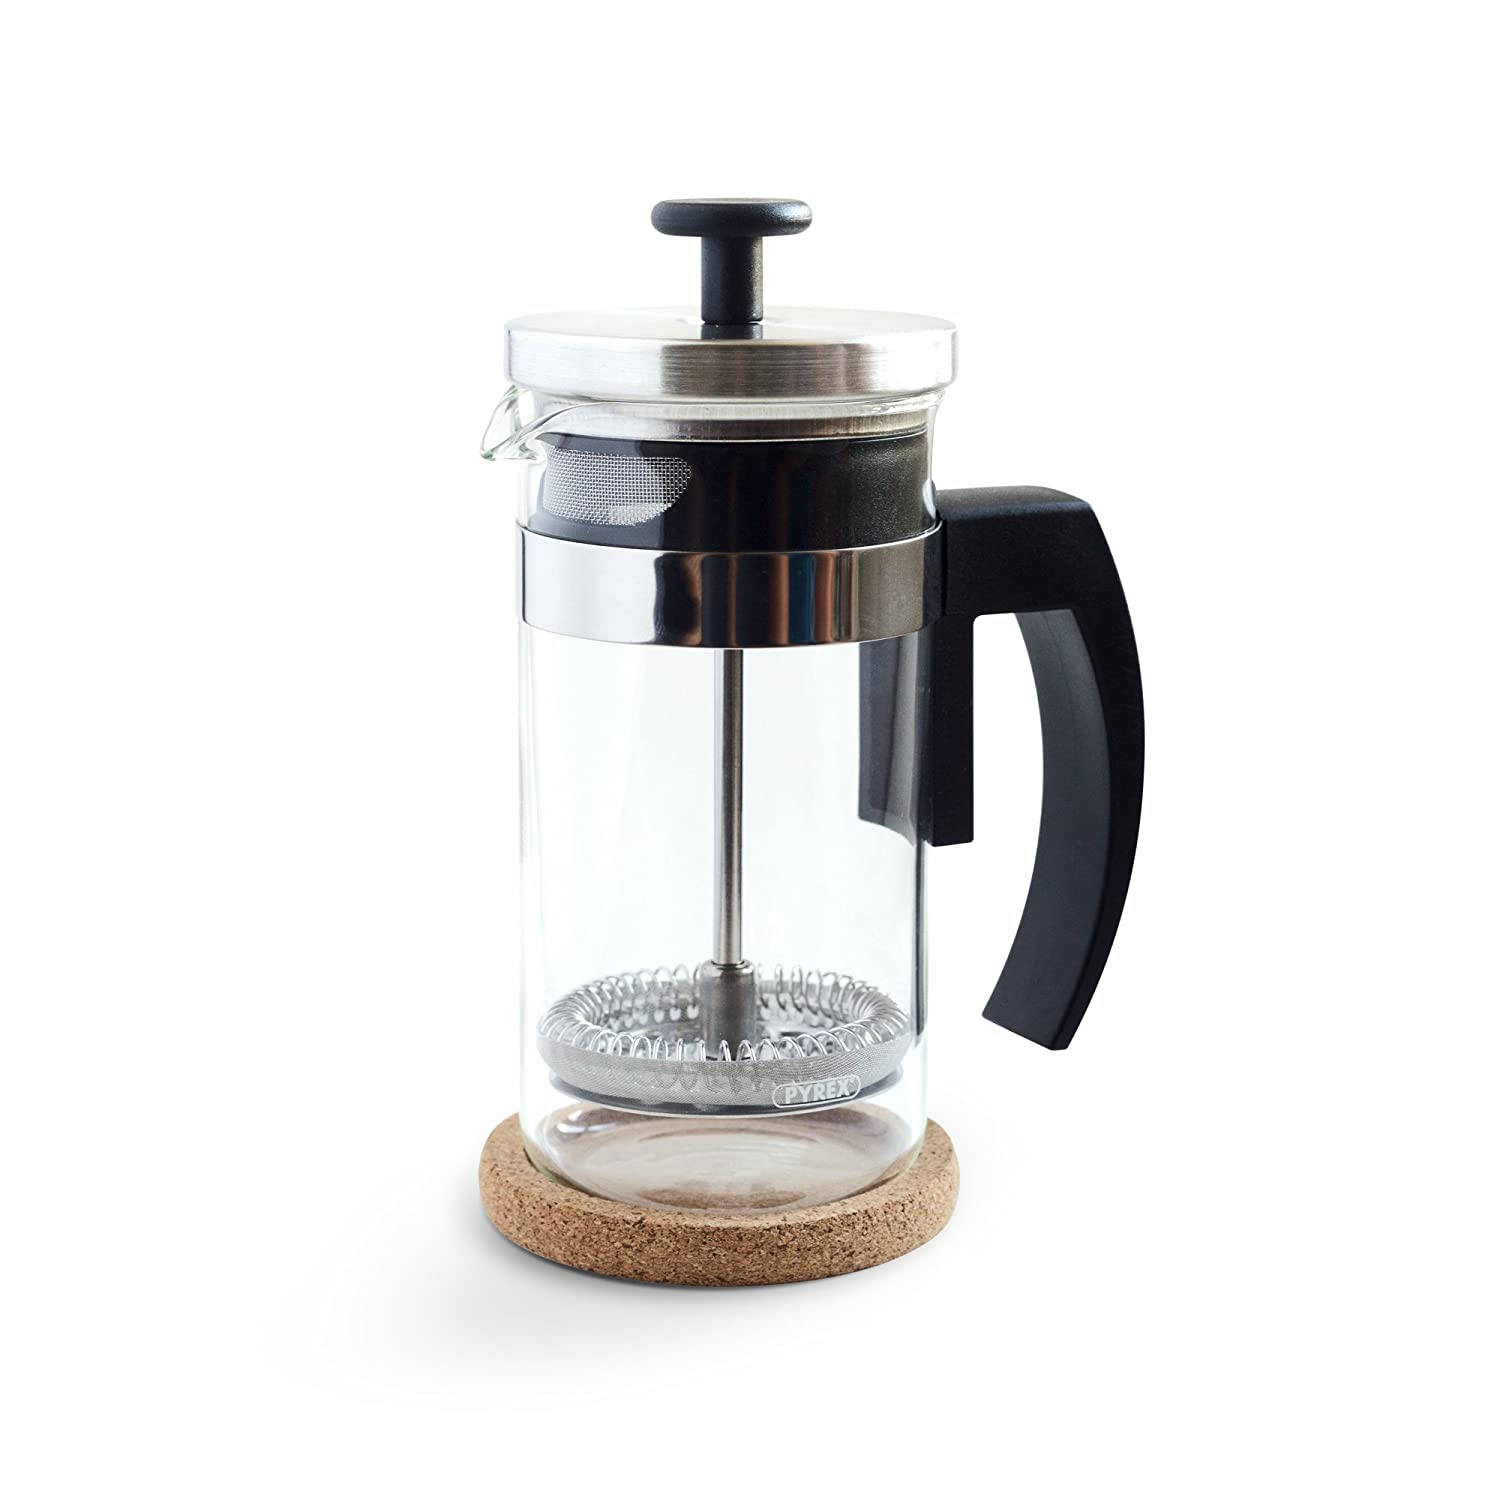 Brillante Small French Press Coffee Maker, 12 Ounce Single Serve Cafetiere